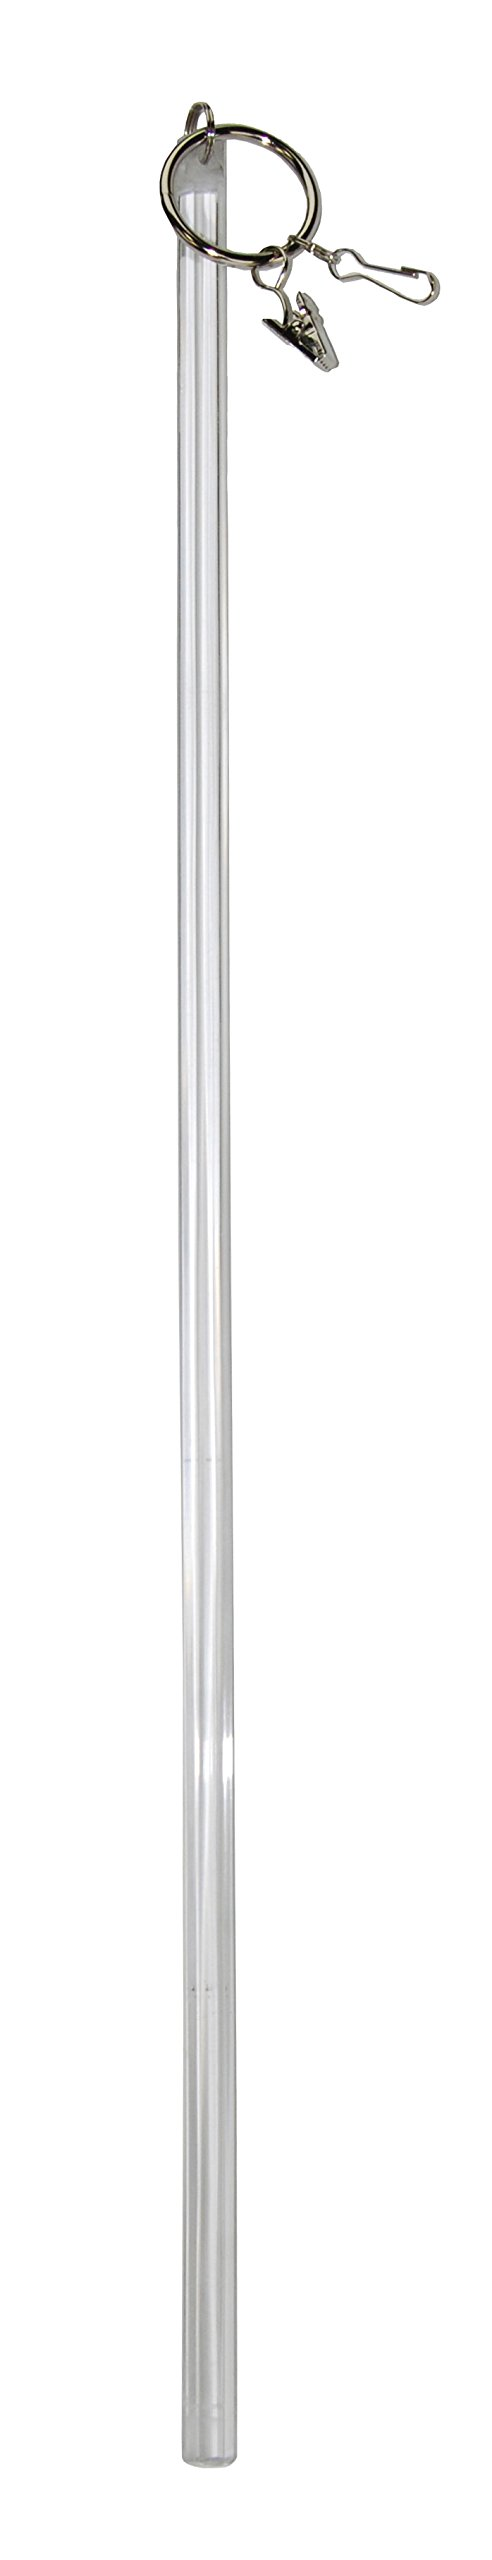 Versailles Home Fashions HF02-0 Acrylic Drapery Wand Pair, 34'', Clearfrost by Versailles Home Fashions